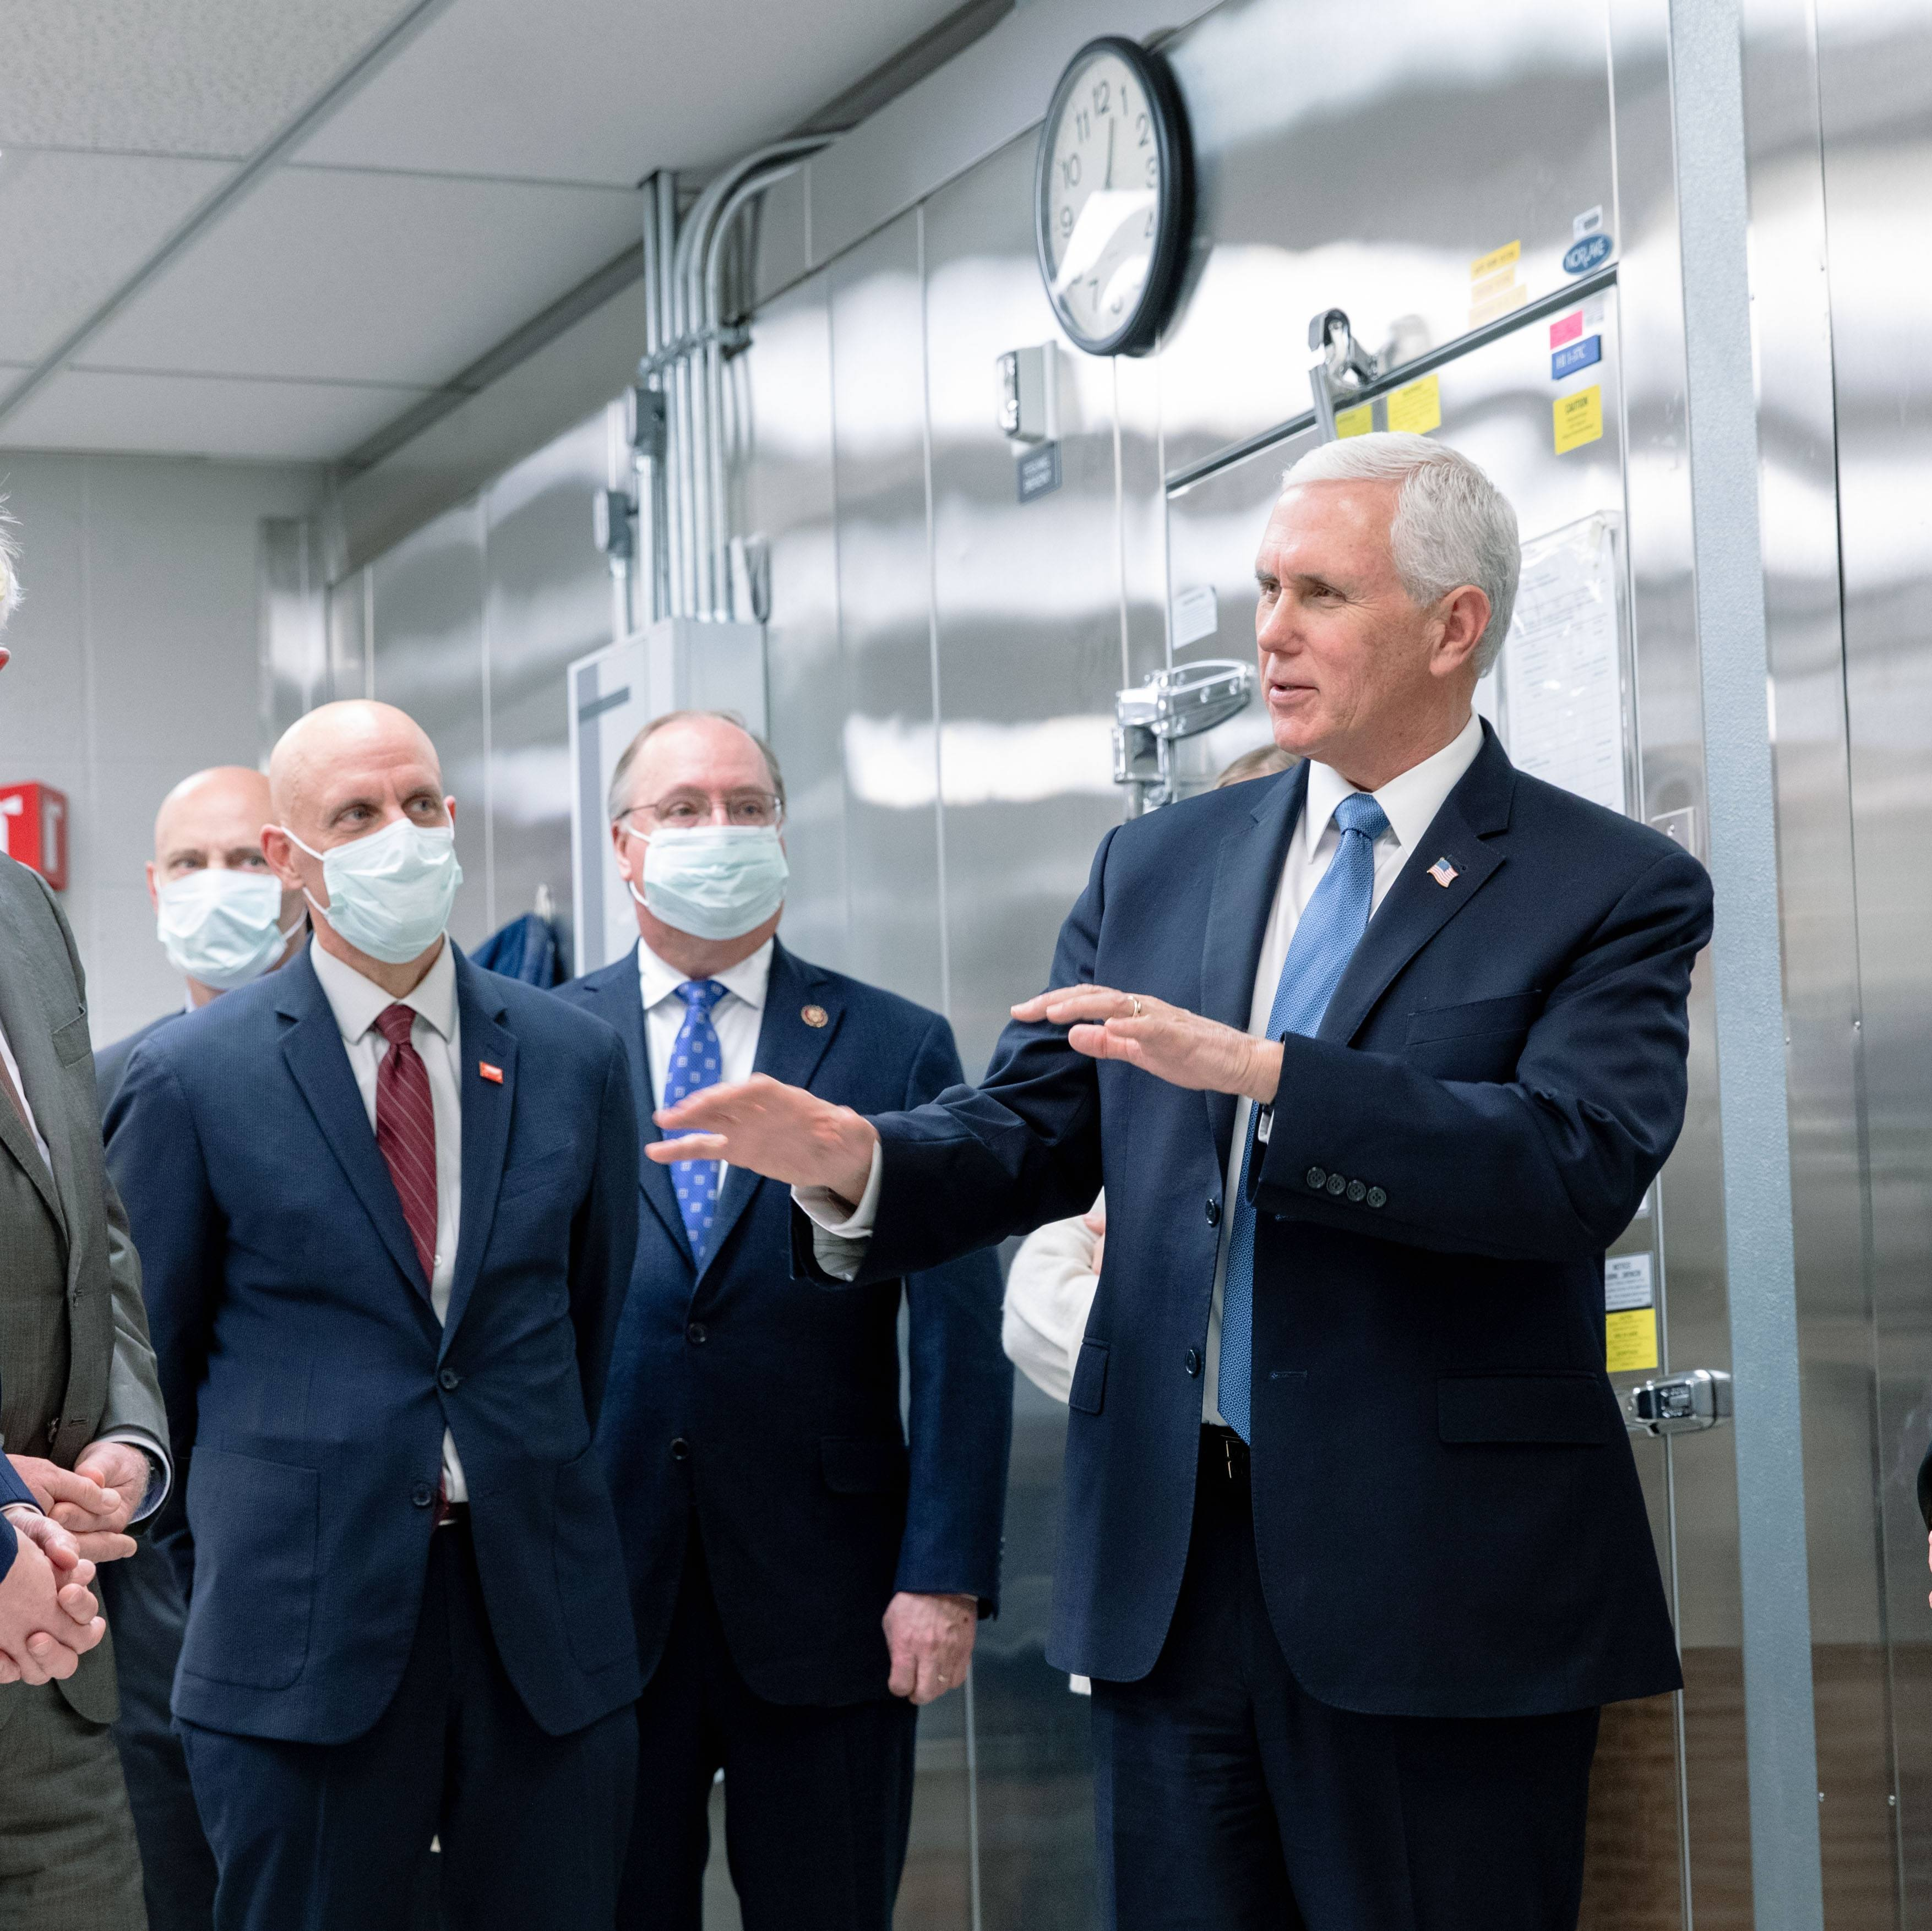 Vice President Pence on the Mayo Clinic lab tour